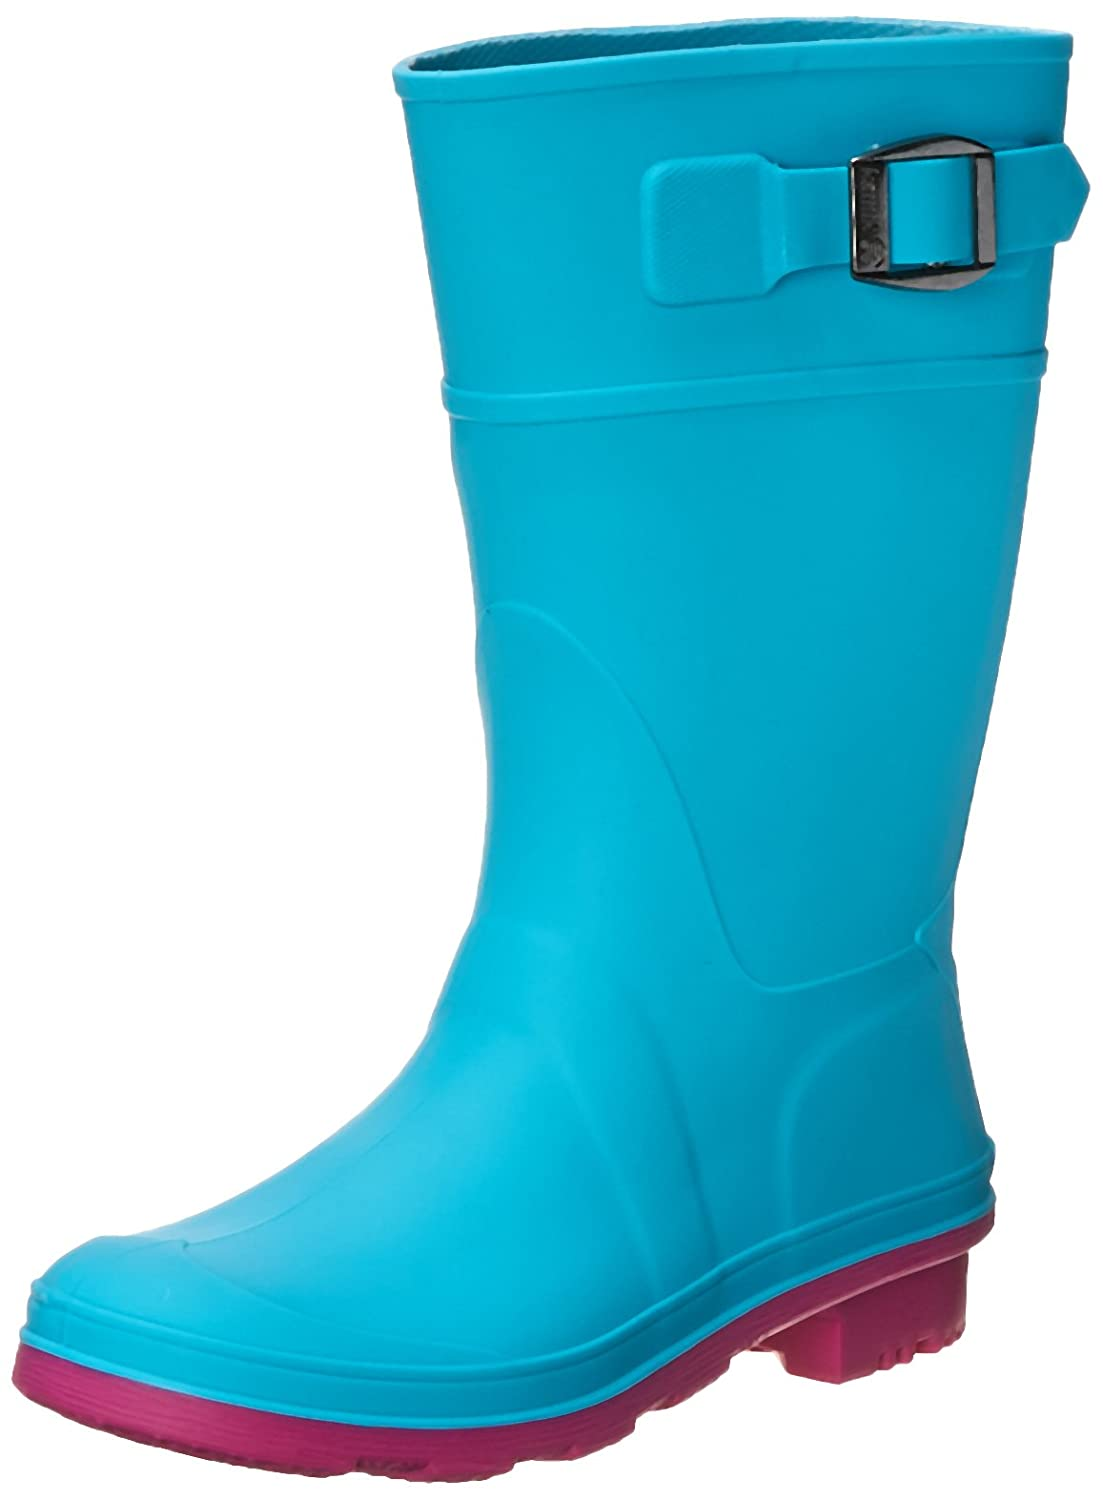 Kamik Raindrops Rain Boot (Little Kid/Big Kid)  diesel часы diesel dz1793 коллекция rollcage